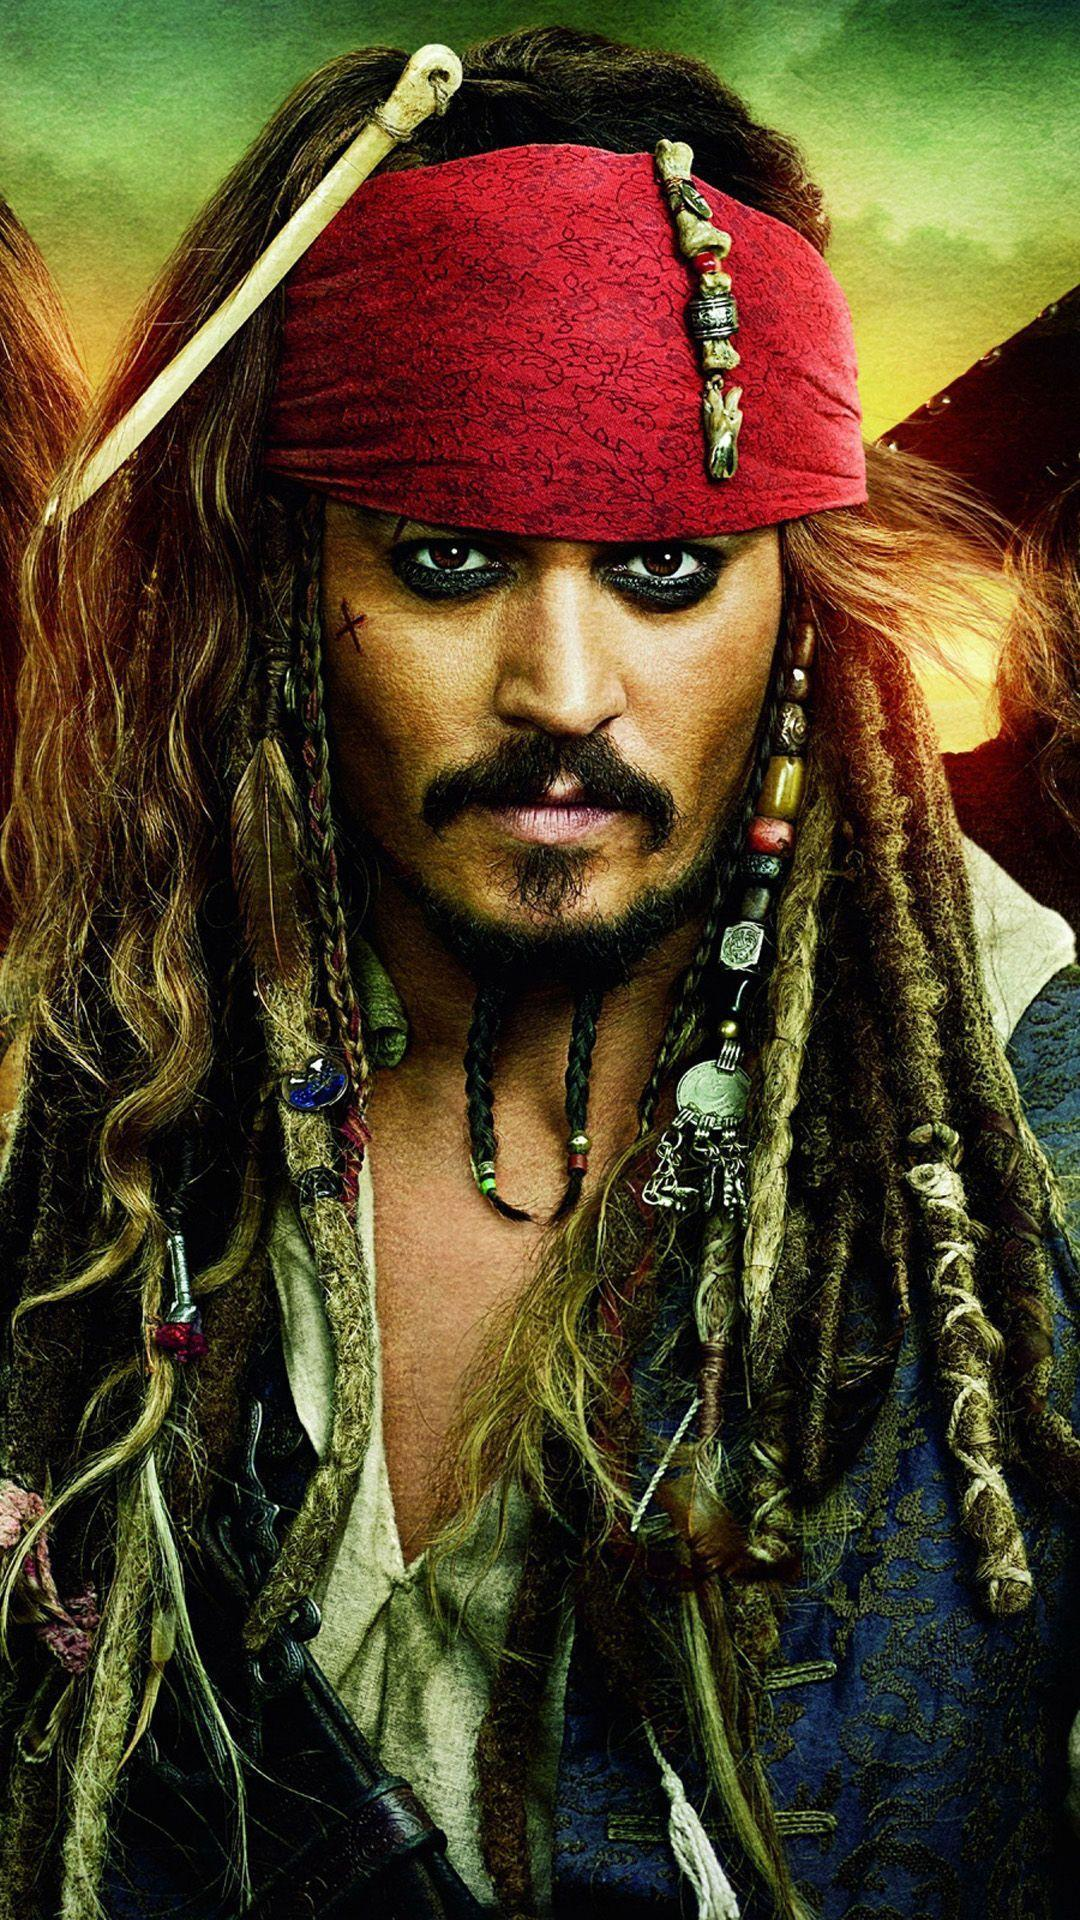 Pirates of the caribbean hd wallpapers wallpaper cave - Caribbean iphone wallpaper ...